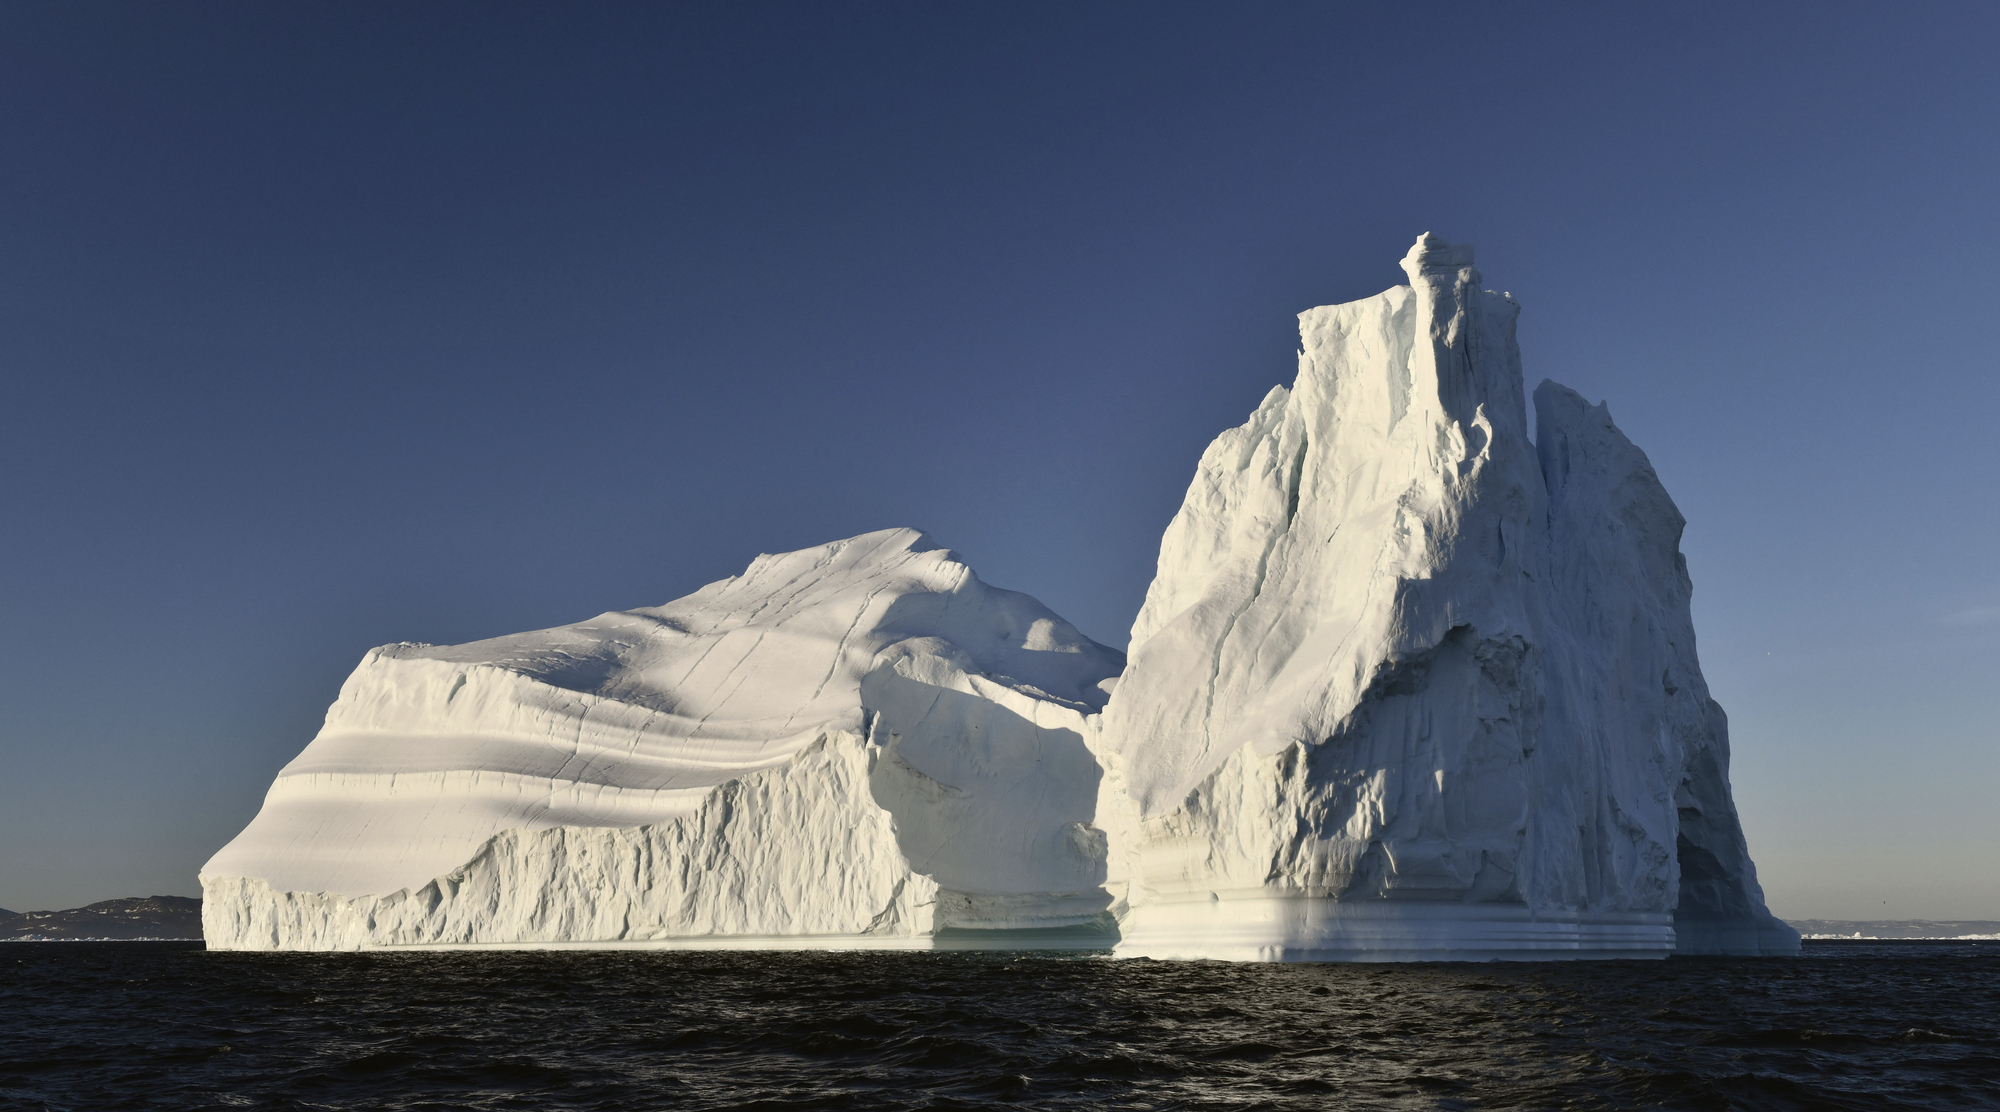 26-year study shows Greenland is losing ice much faster than expected